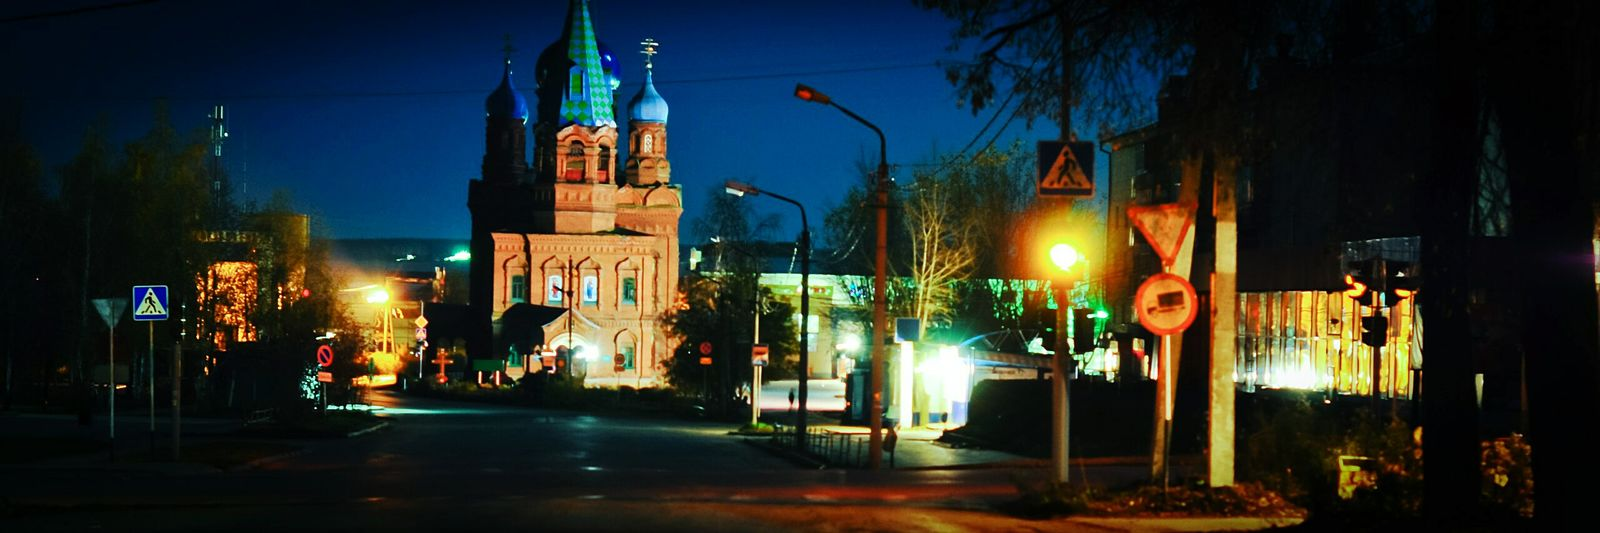 Cityscapes Streetphoto Summer Krasnoyfimsk Ural My City City Lights Hello World